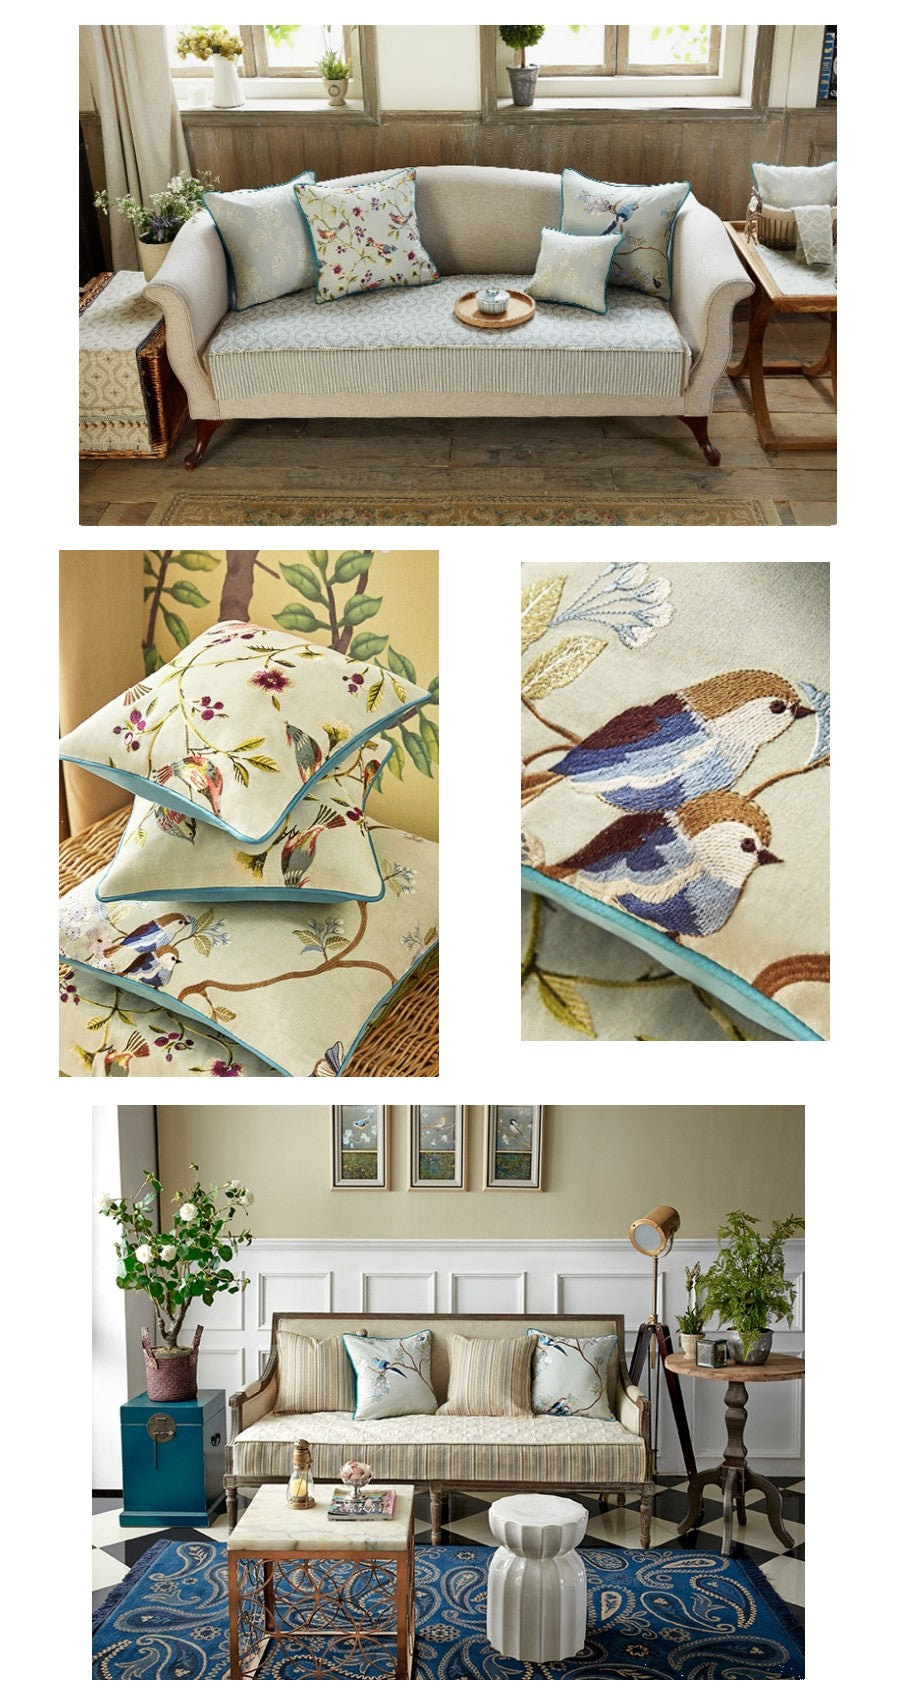 Bird and Flower Tree Pillow Cover, Home Decorative Throw Pillow, Blue Sofa Pillows